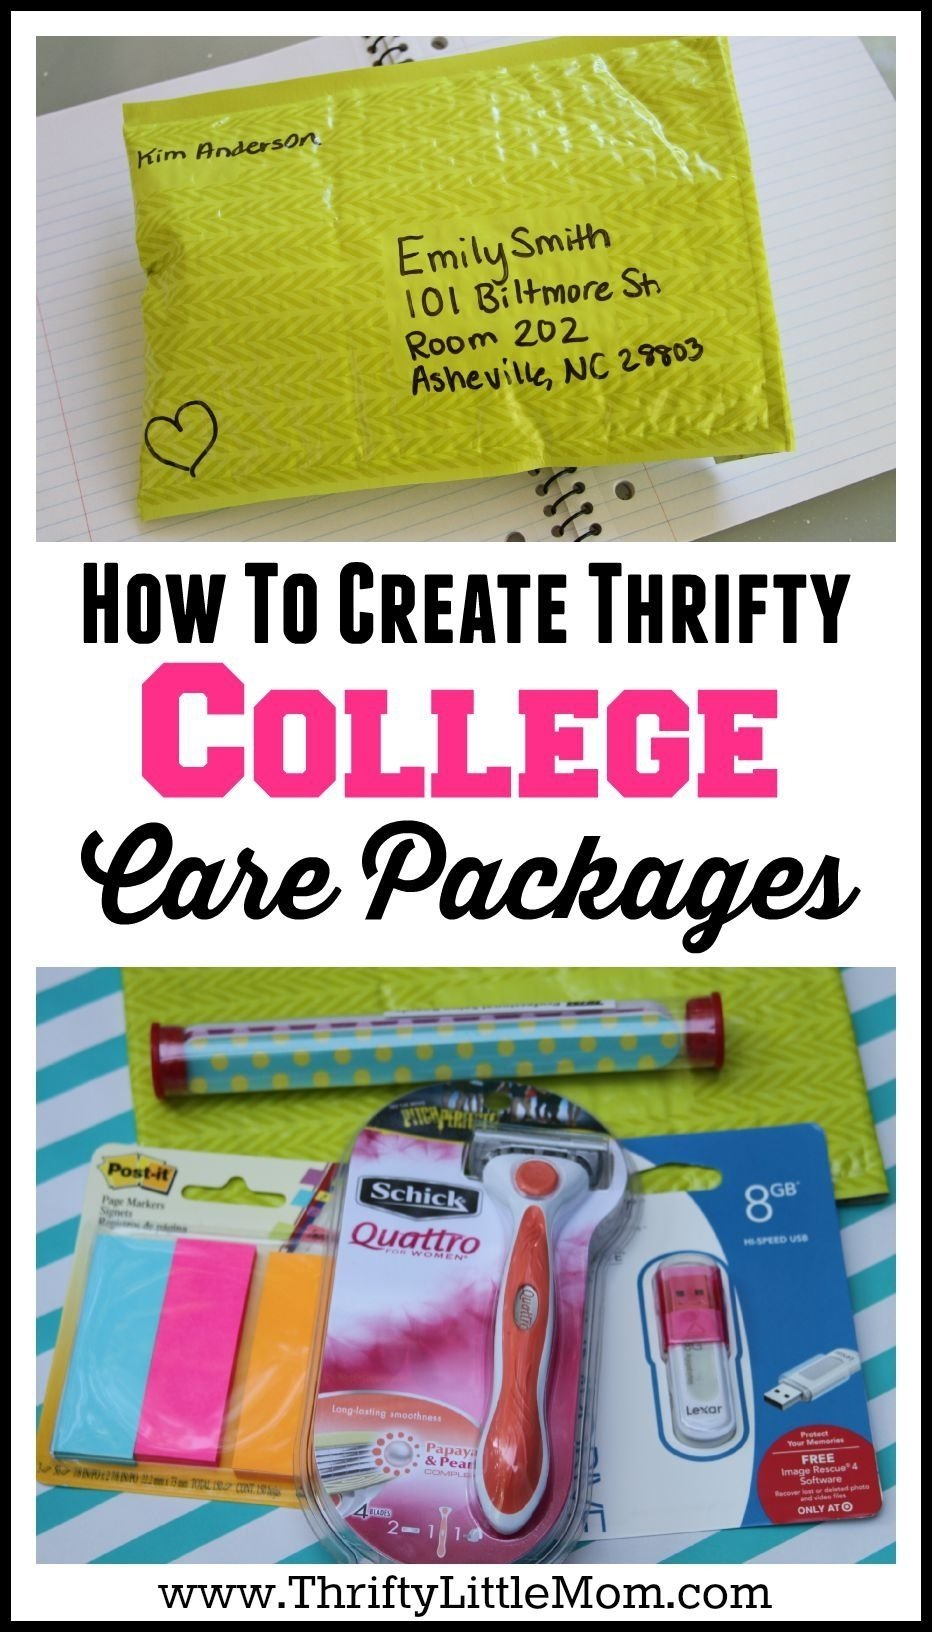 10 Stylish Care Package Ideas For College Girls creating thrifty college care packages hug college and create 2020